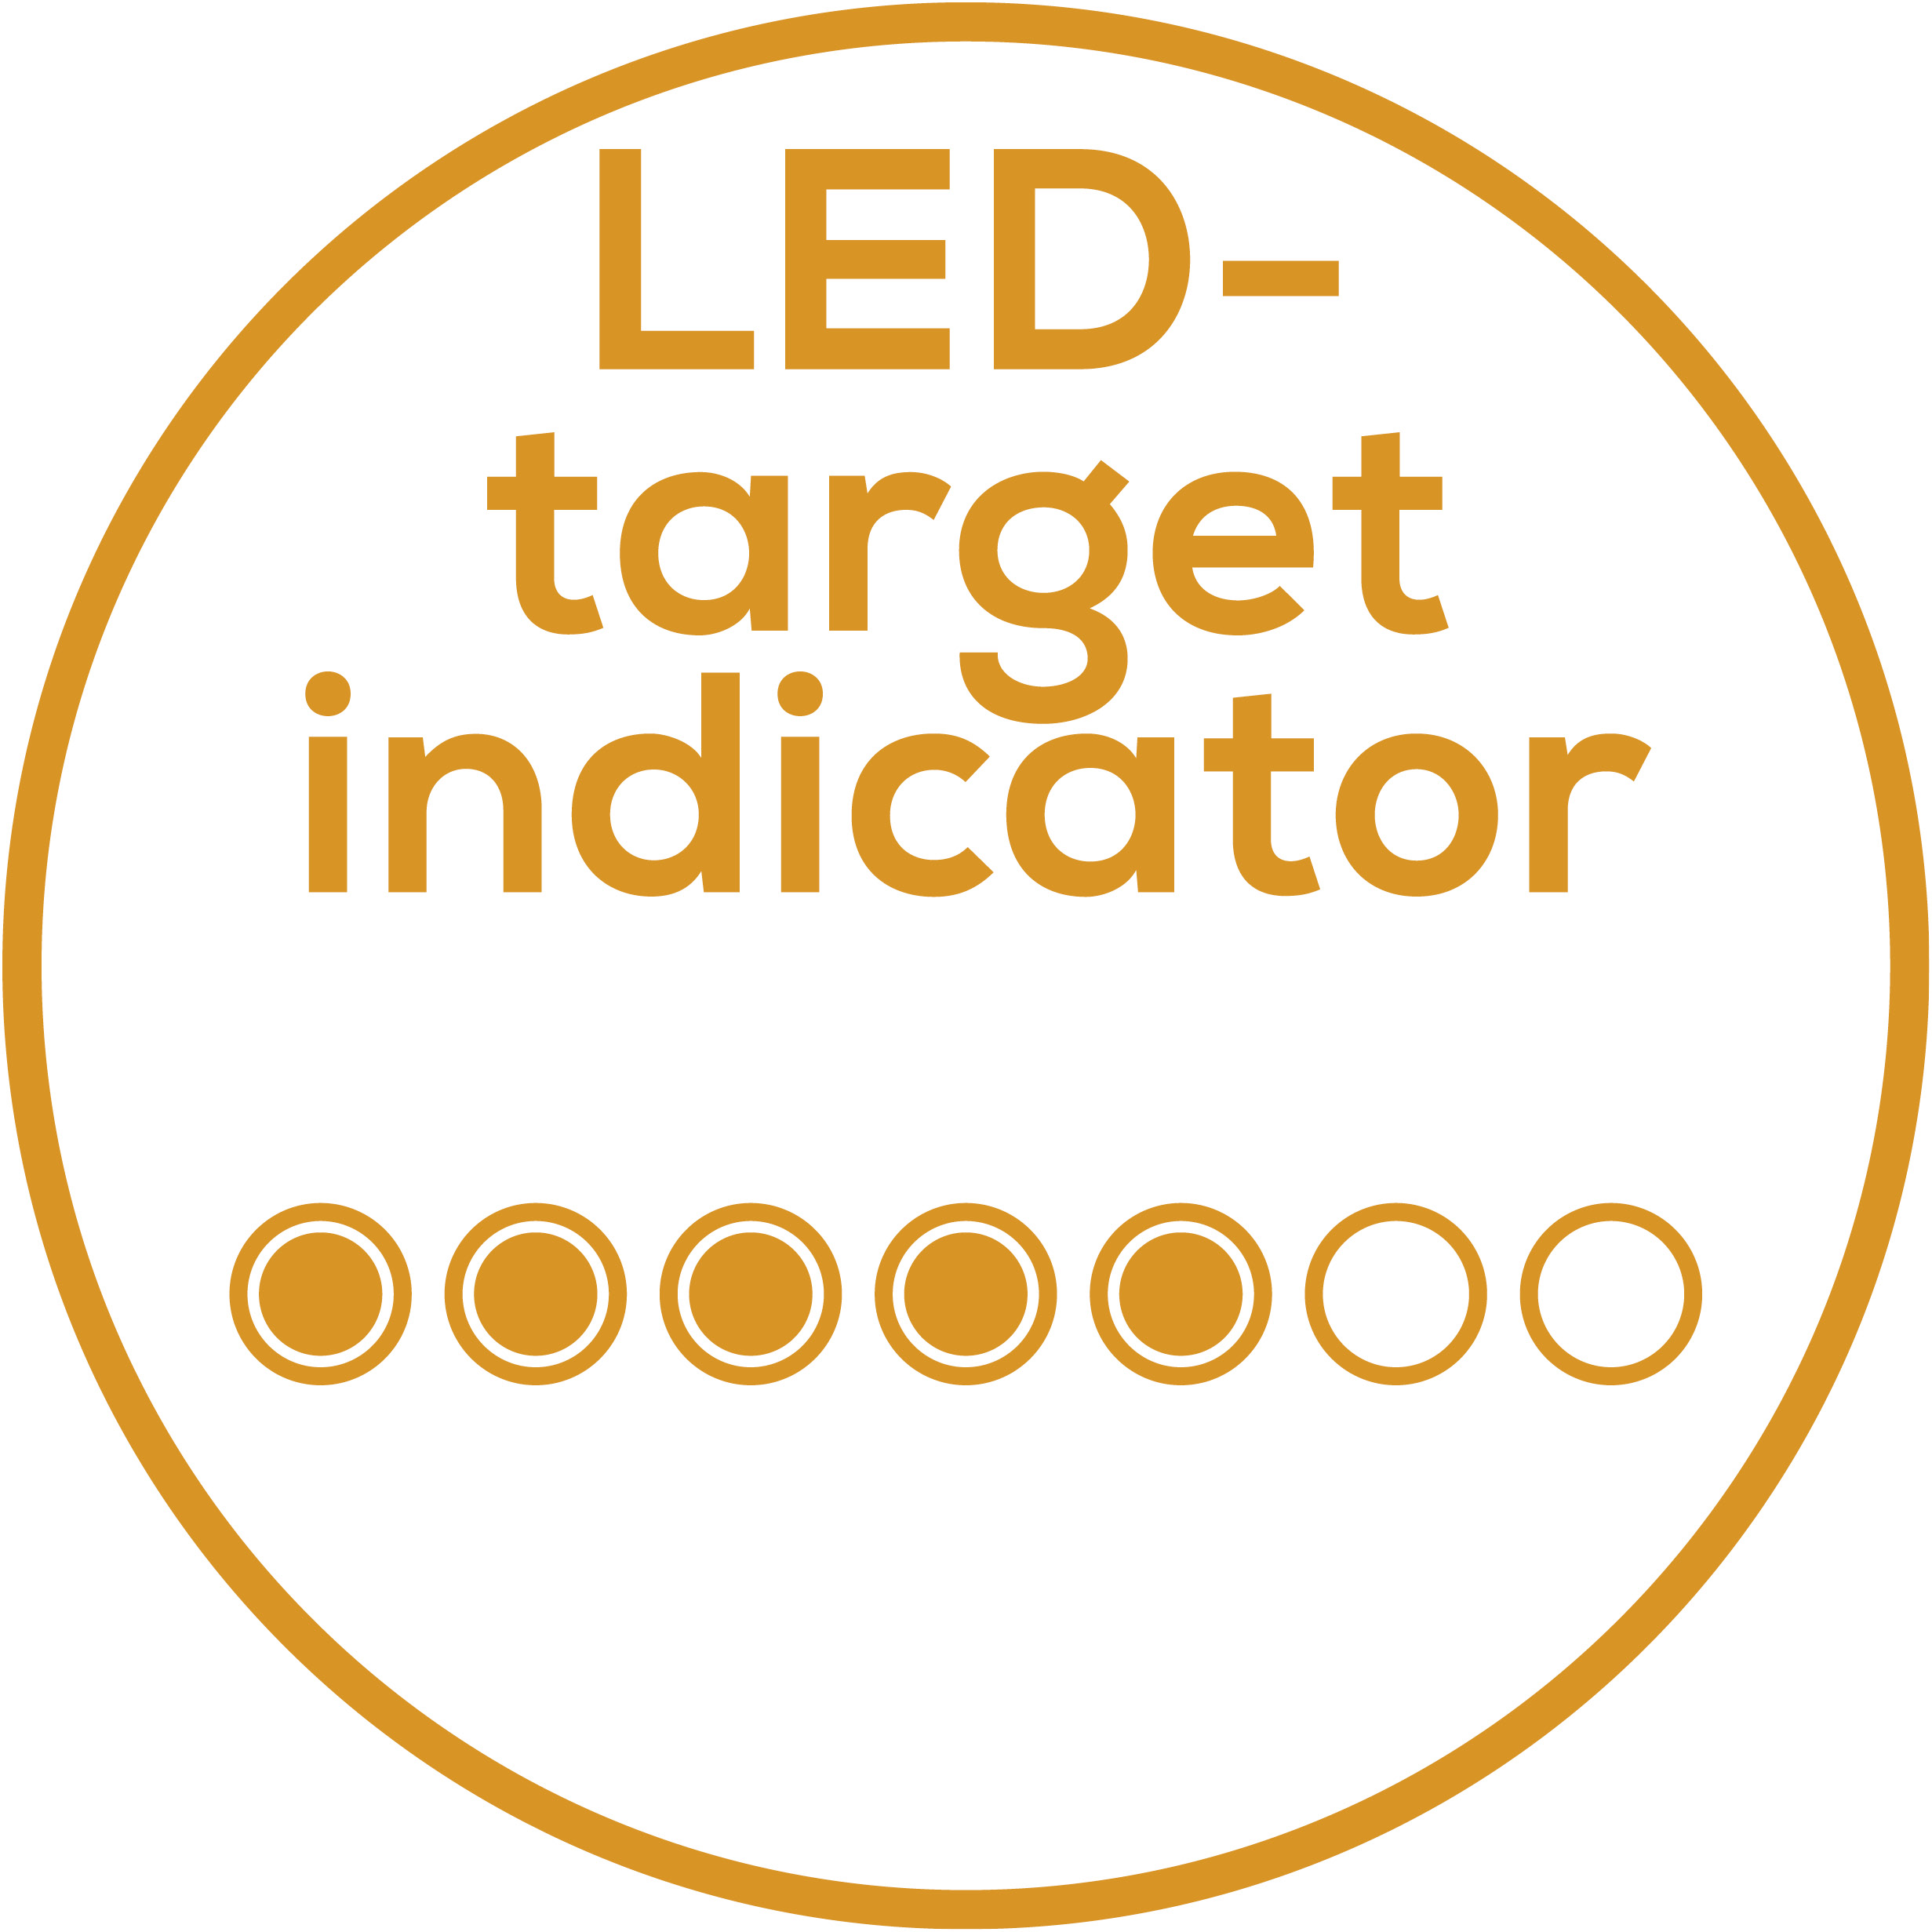 LED motivator Provides colour-coded feedbackn so that achieving your target is always in sight